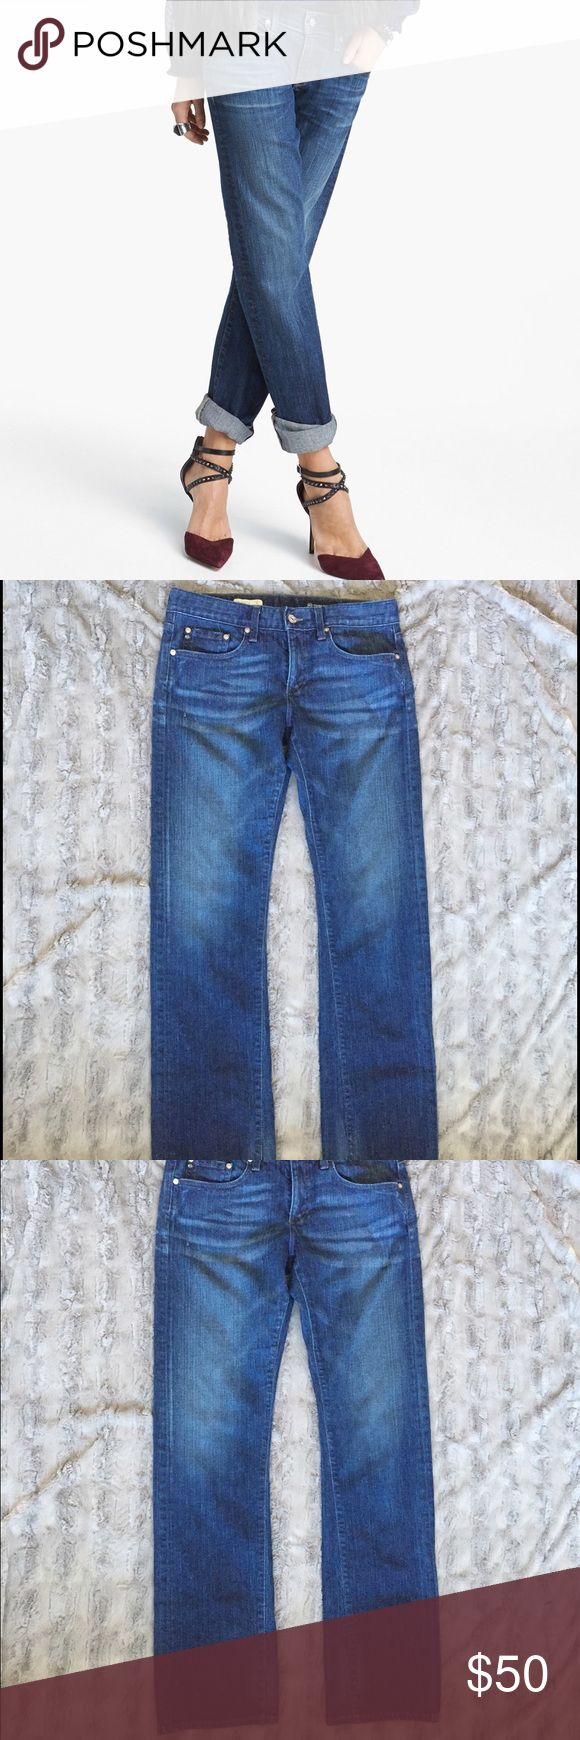 """AG Adriano Goldschmied Tomboy boyfriend fit jeans Adorable AG boyfriend fit jeans. Wash looks more like last picture as first few pics were taken in bright sunlight. 29W, measures almost 17"""" across when lying flat, 34"""" inseam, and has a 9"""" rise. Super sturdy and soft. AG Adriano Goldschmied Jeans Boyfriend"""